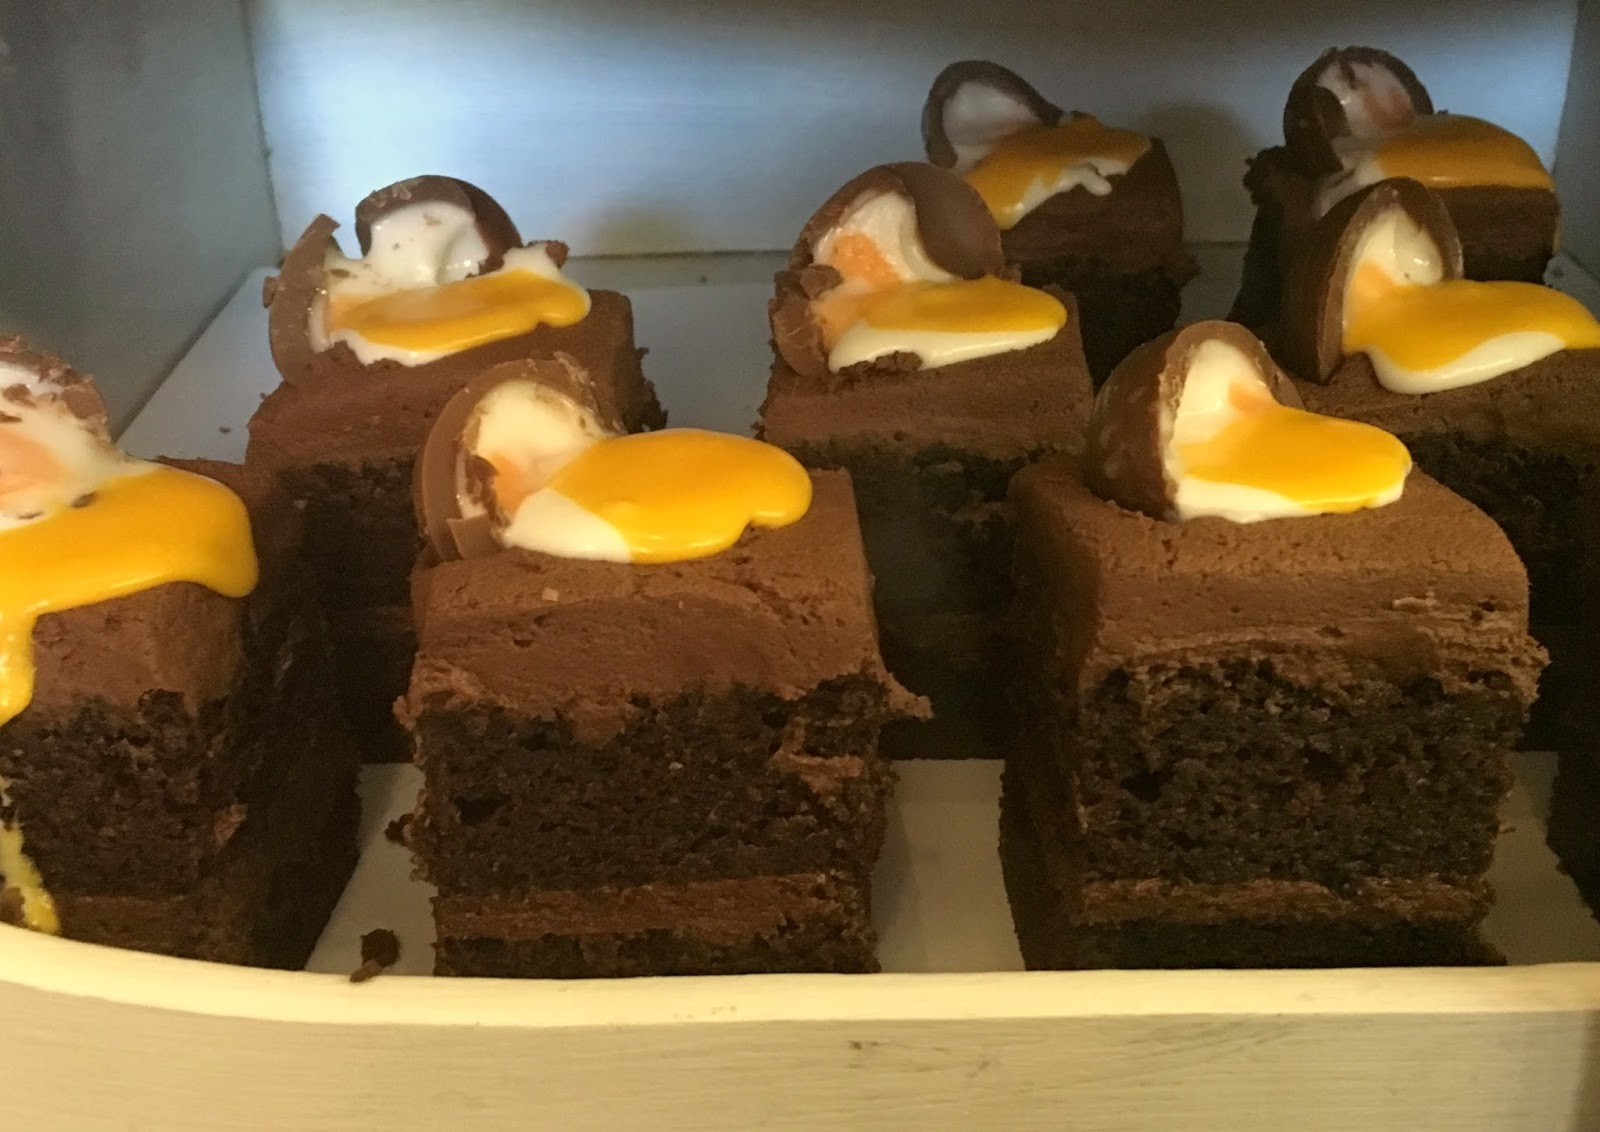 The Best Easter Cakes and Treats in Newcastle - Cake Stories